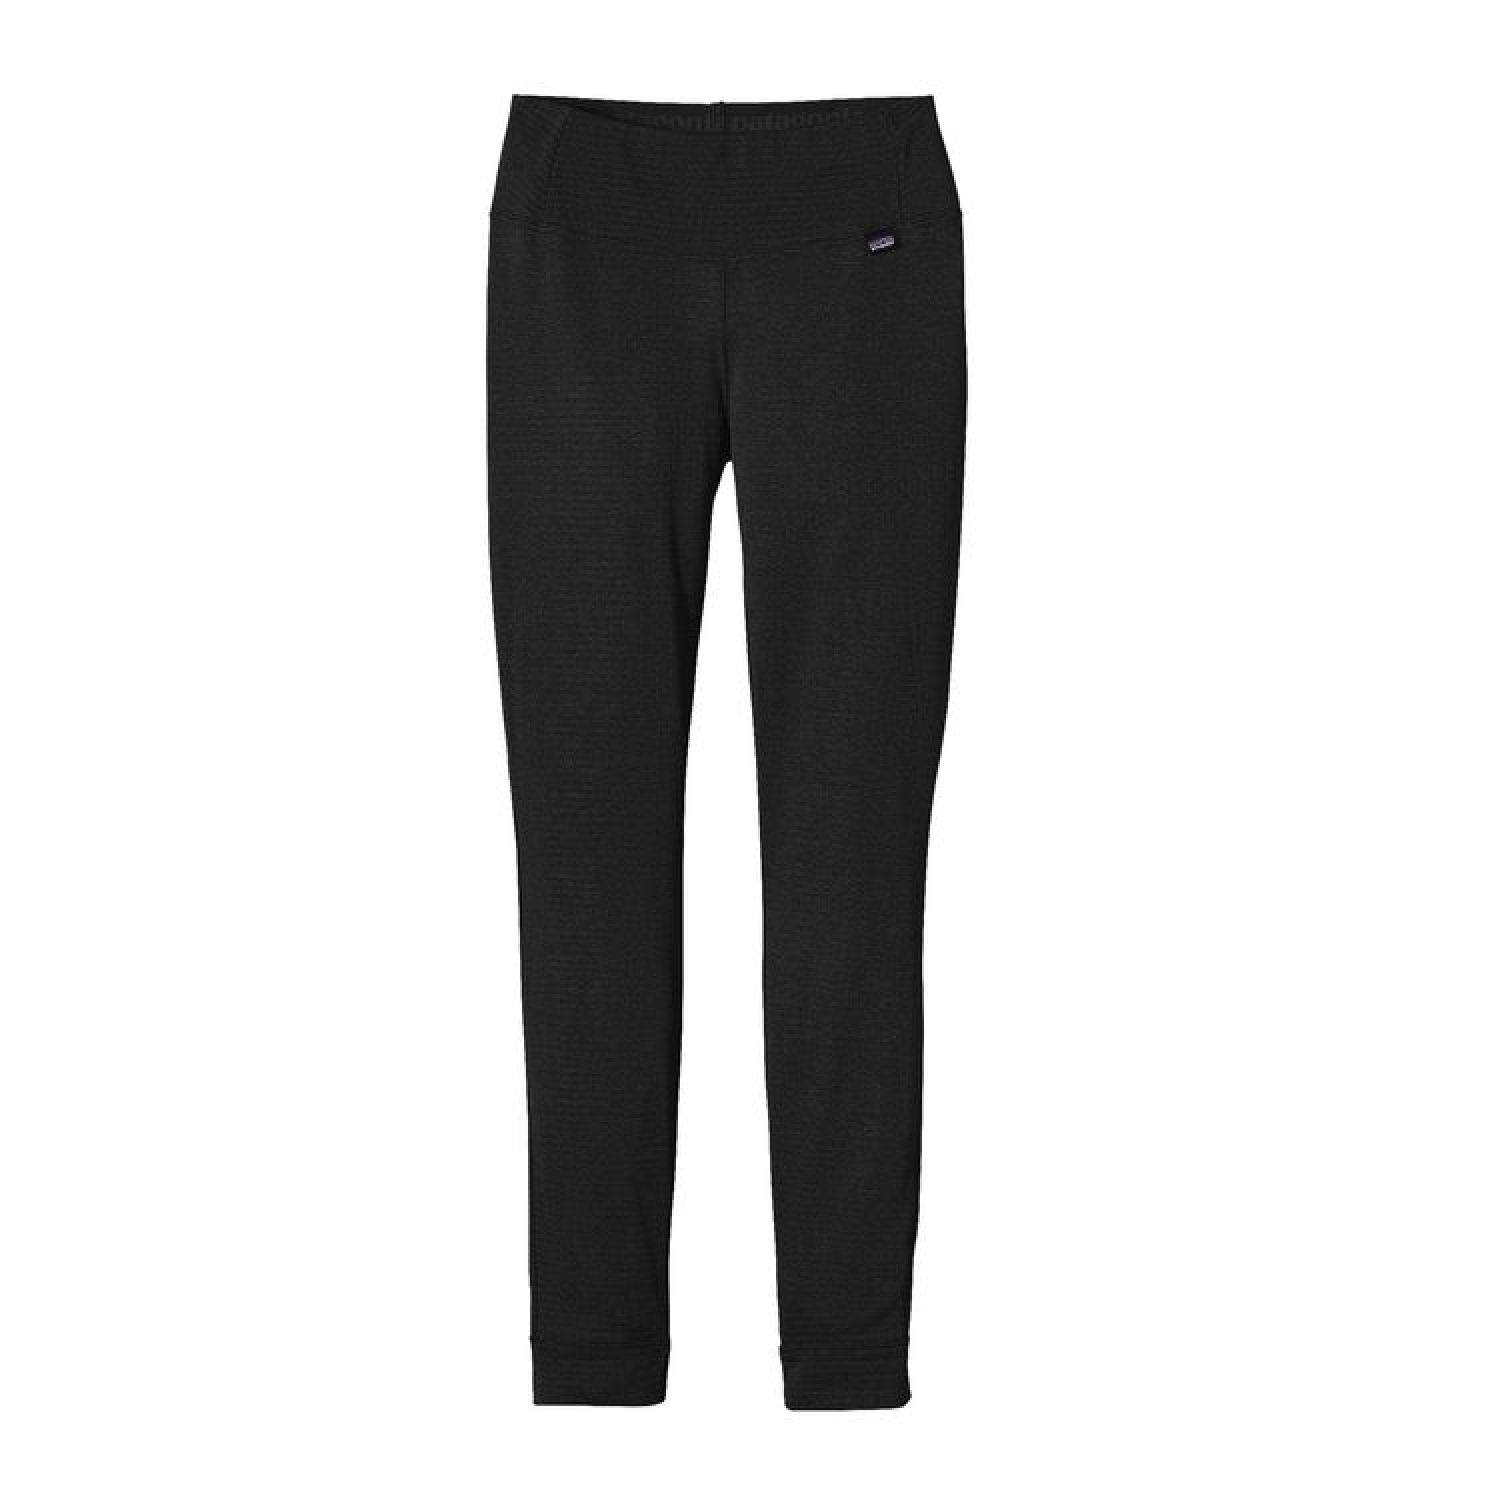 Patagonia Capilene® Thermal Weight Bottoms Black S